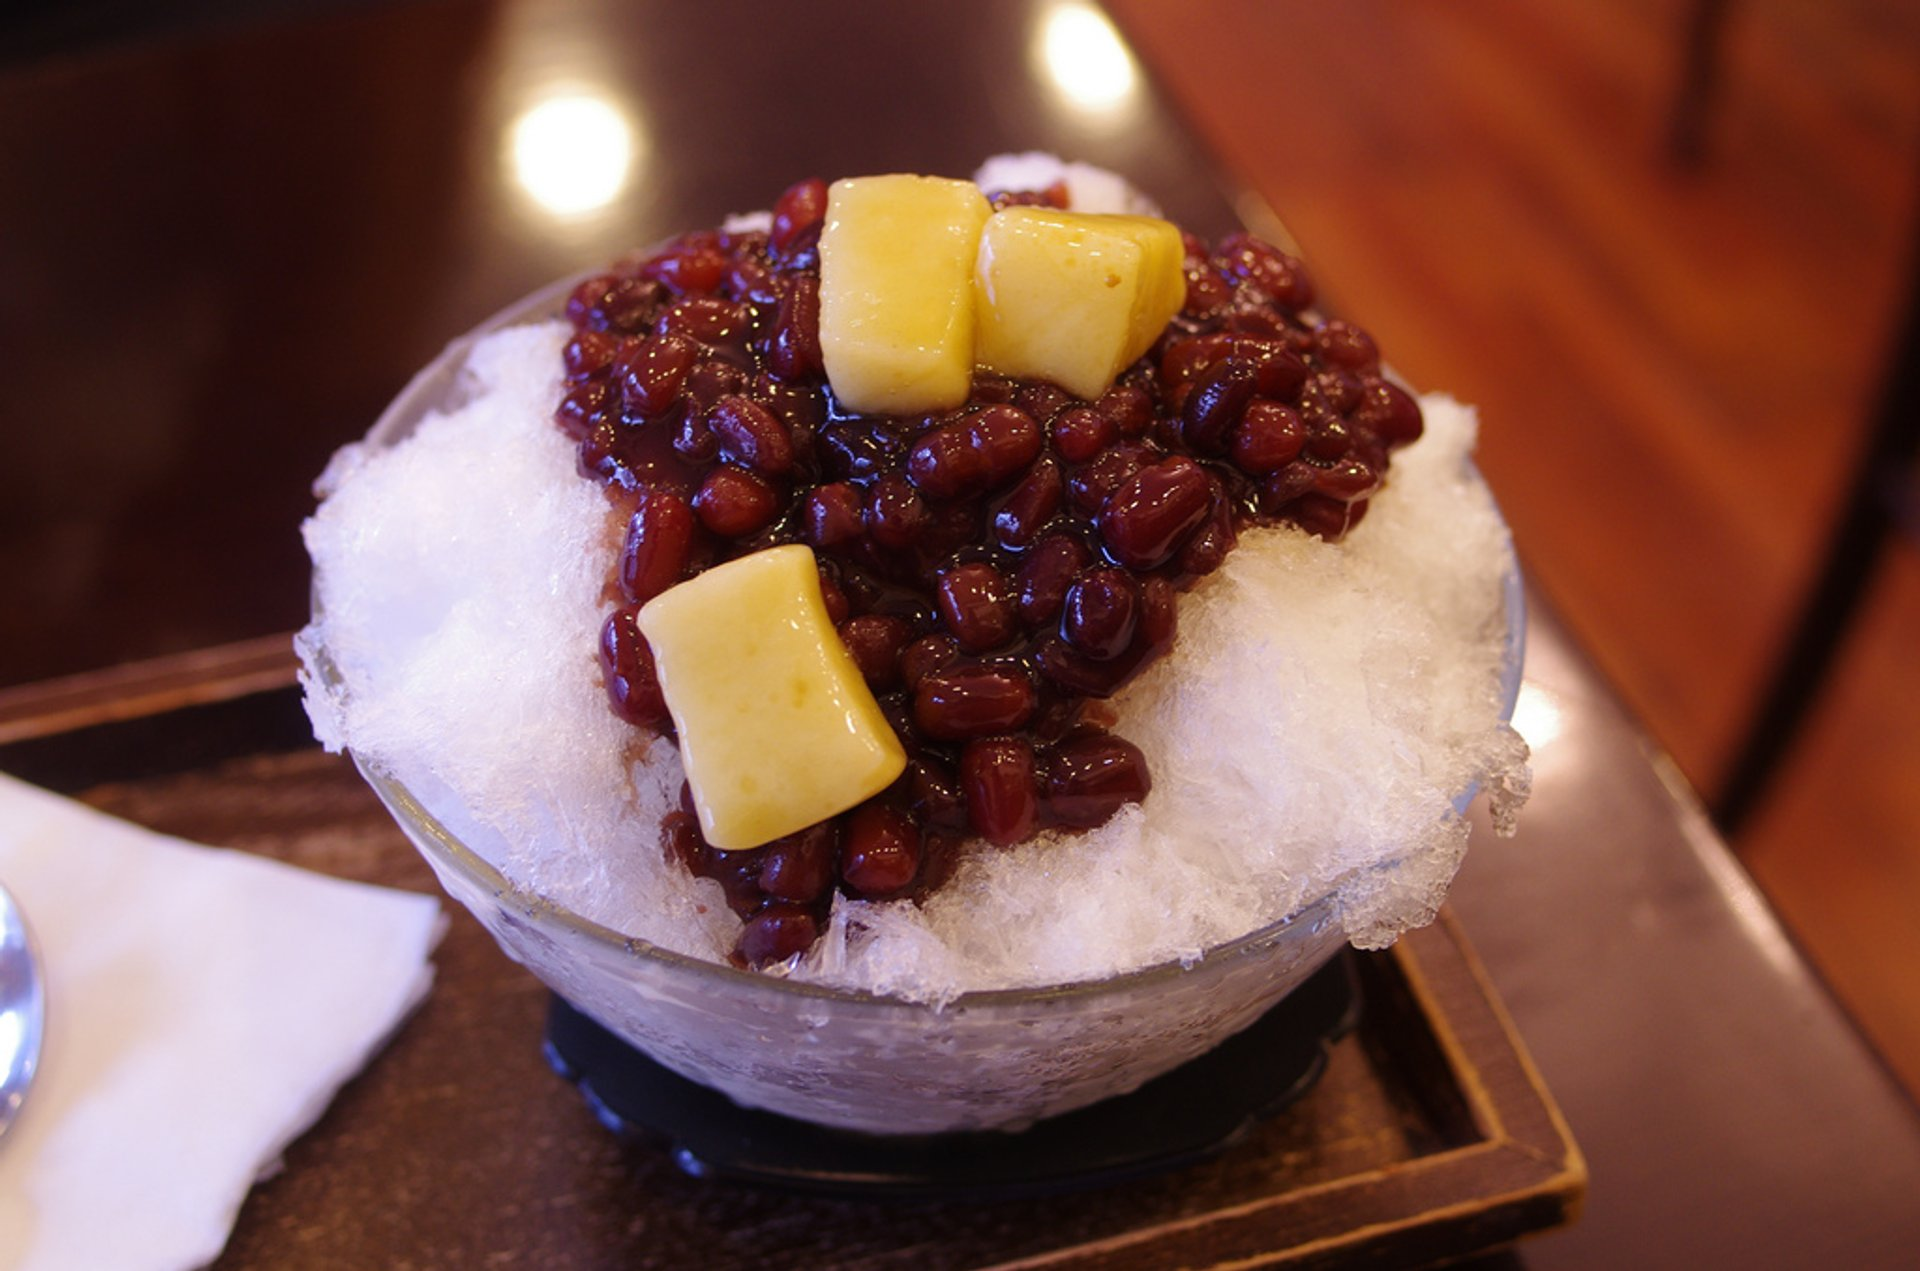 Cool Down with Patbingsu in South Korea 2020 - Best Time